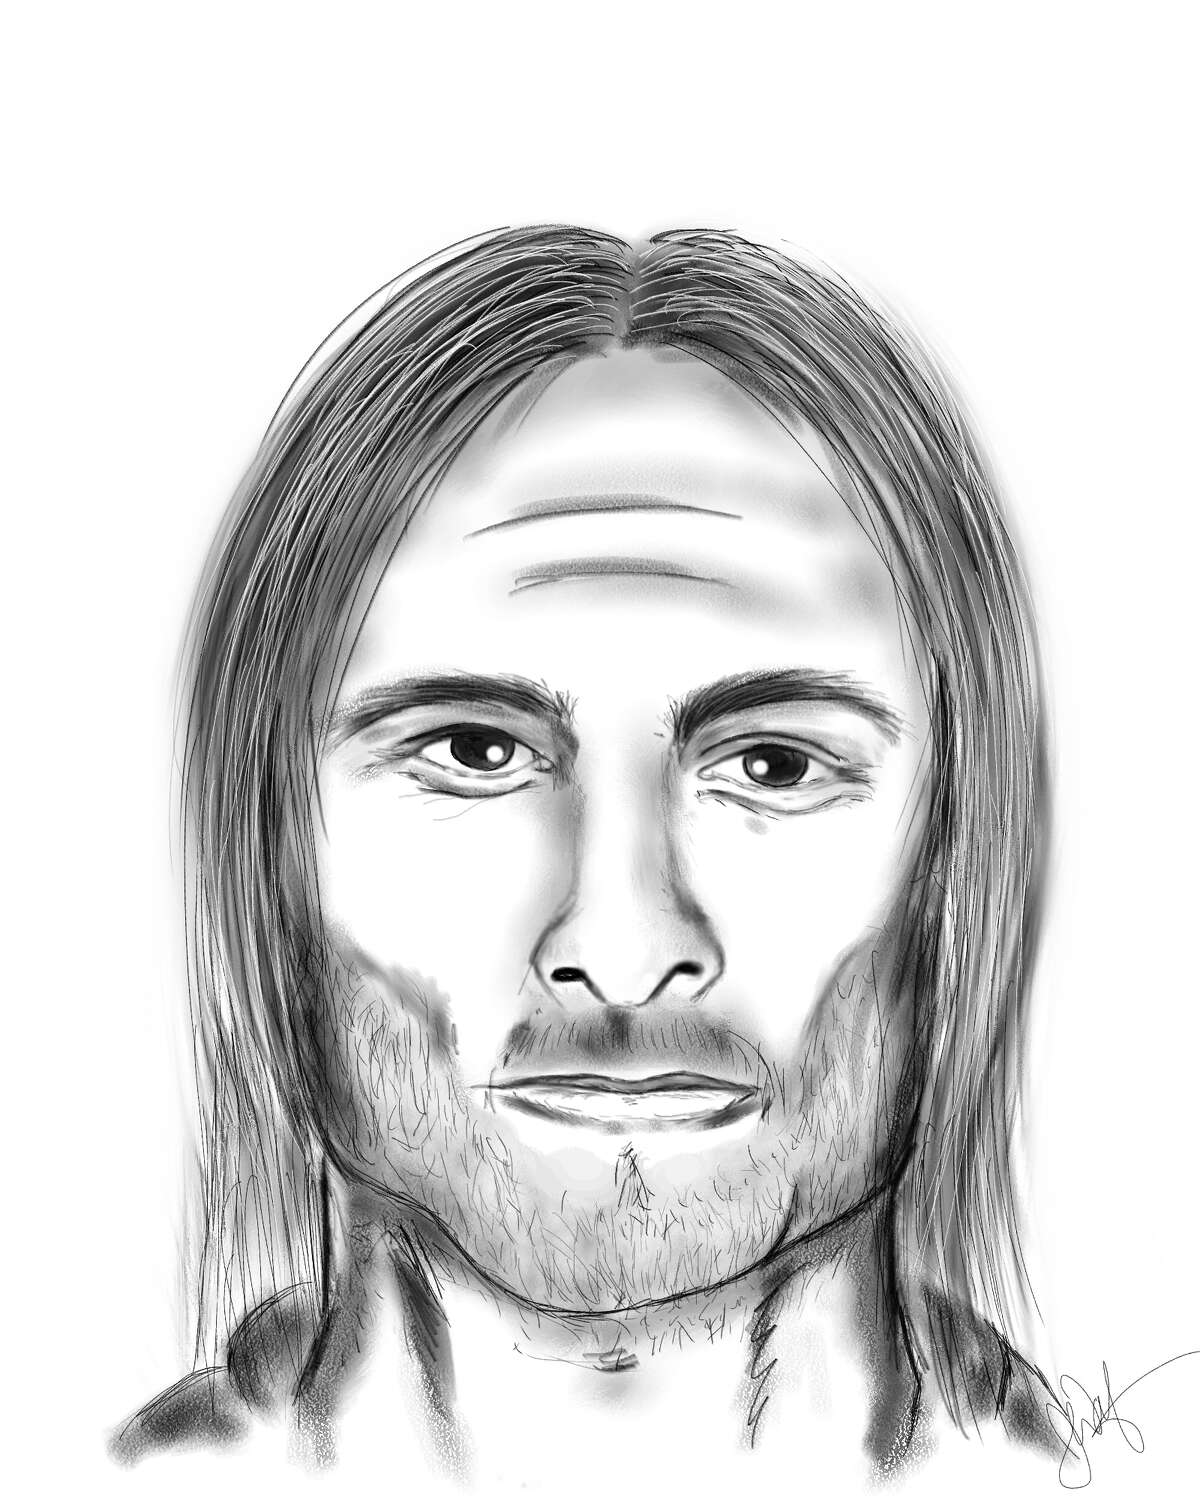 The King County Sheriff's Office released this sketch of the teen's attacker days after the attempted kidnapping in August.